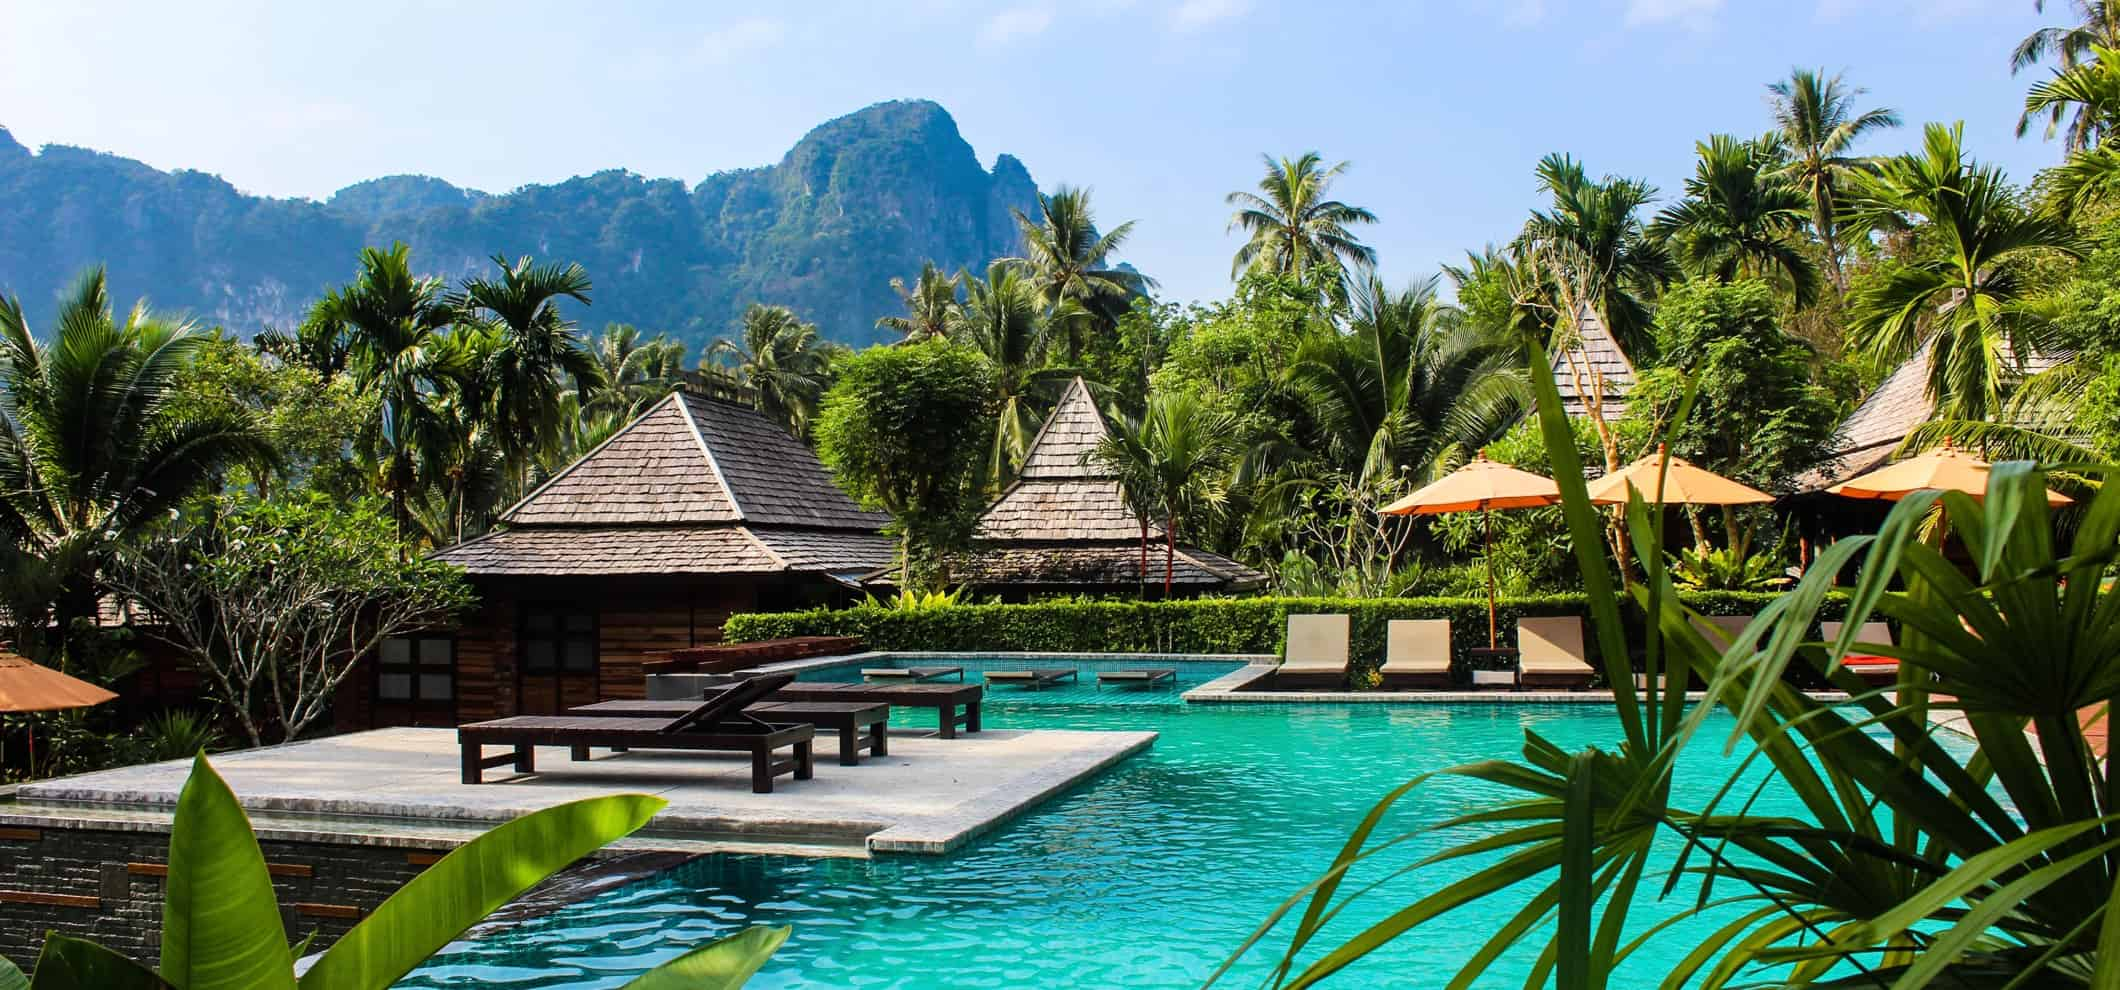 A fancy resort with a pool surrounded by mountains and jungle